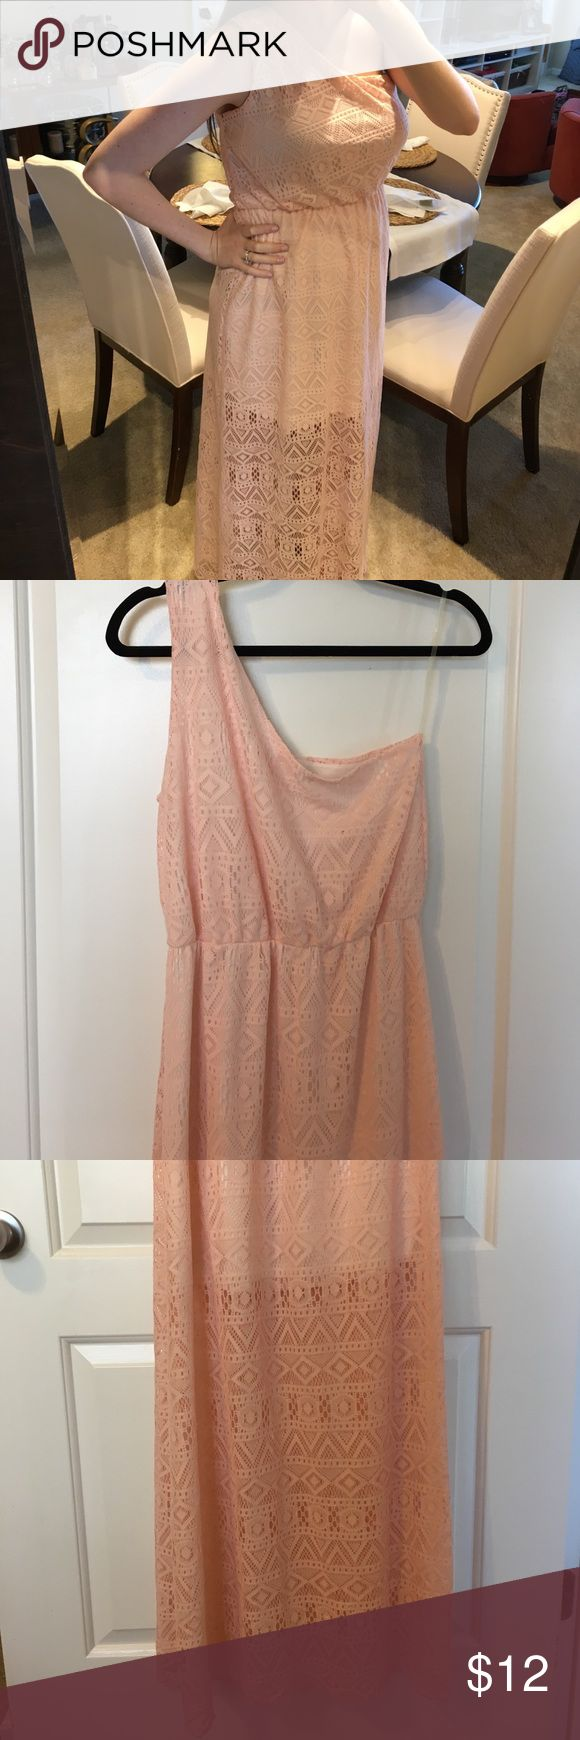 Light Pink Maxi Dress This light pink Aztec print lace maxi dress is perfect for weddings, weekends and the beach! The slip cuts off above the knee for a beautiful look. Only worn once! Purchased from a boutique. NewburyKustom Dresses One Shoulder